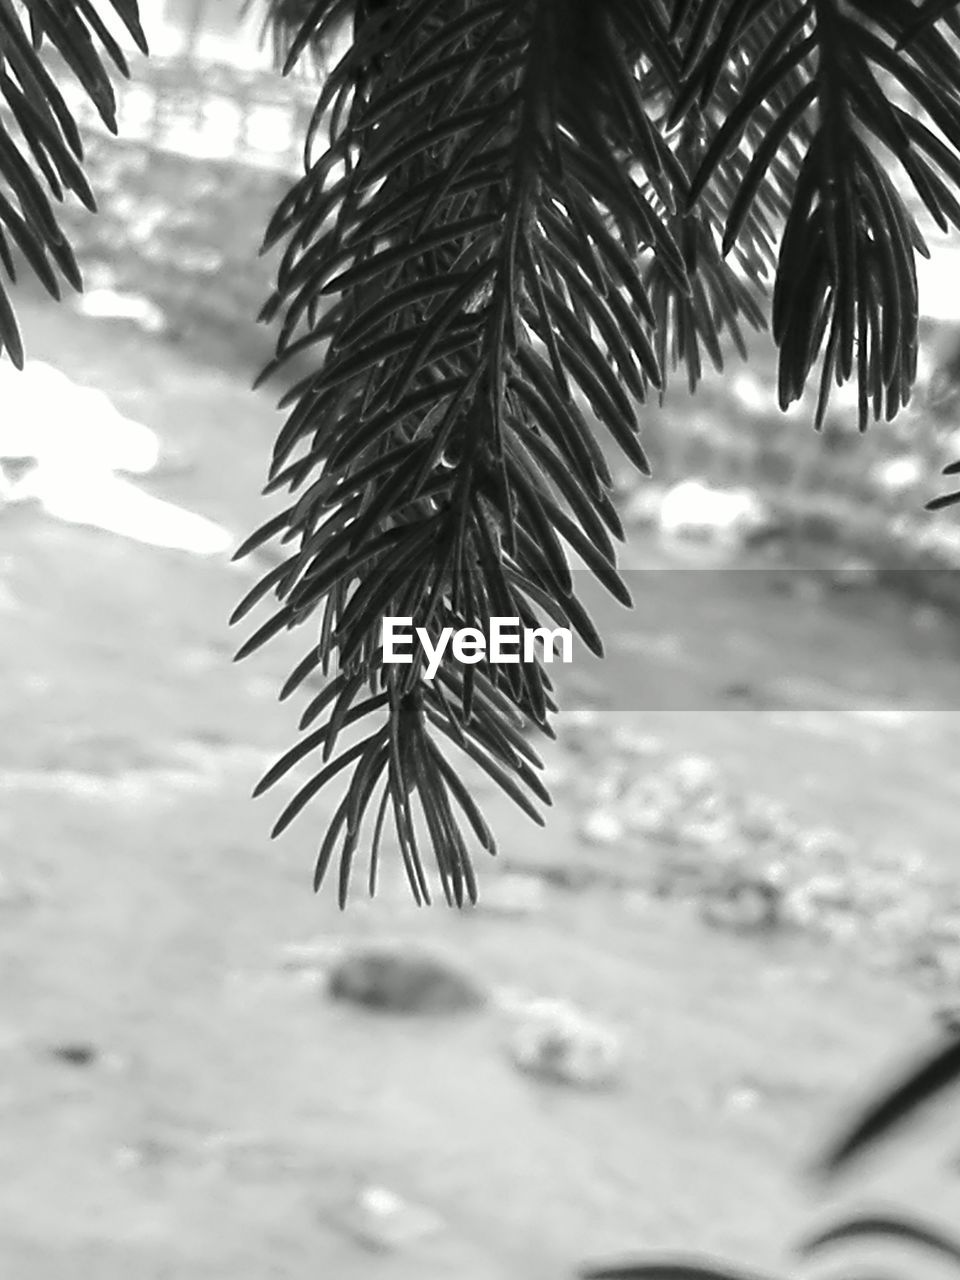 no people, close-up, tree, day, nature, palm tree, beauty in nature, cold temperature, winter, indoors, freshness, sky